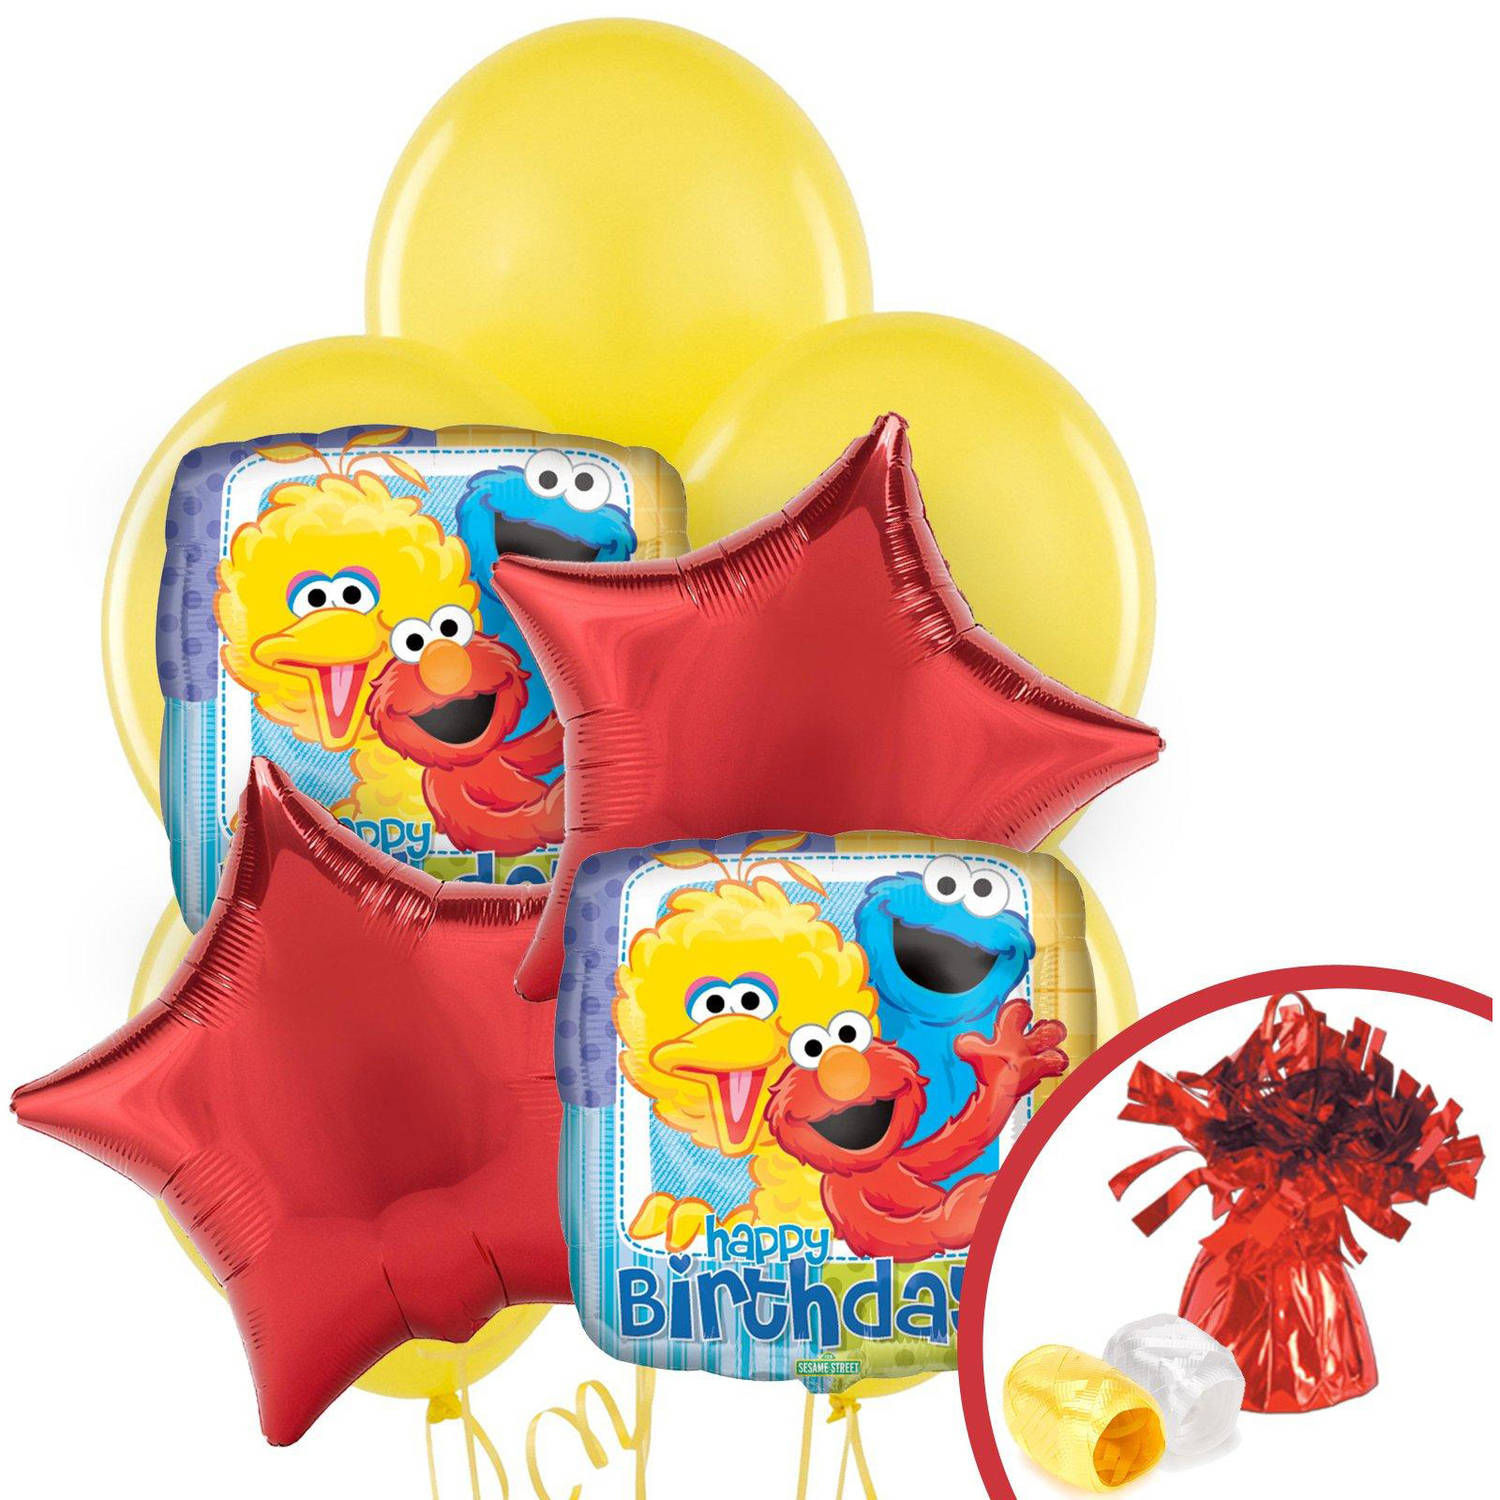 Sesame Street Party Balloon Bouquet